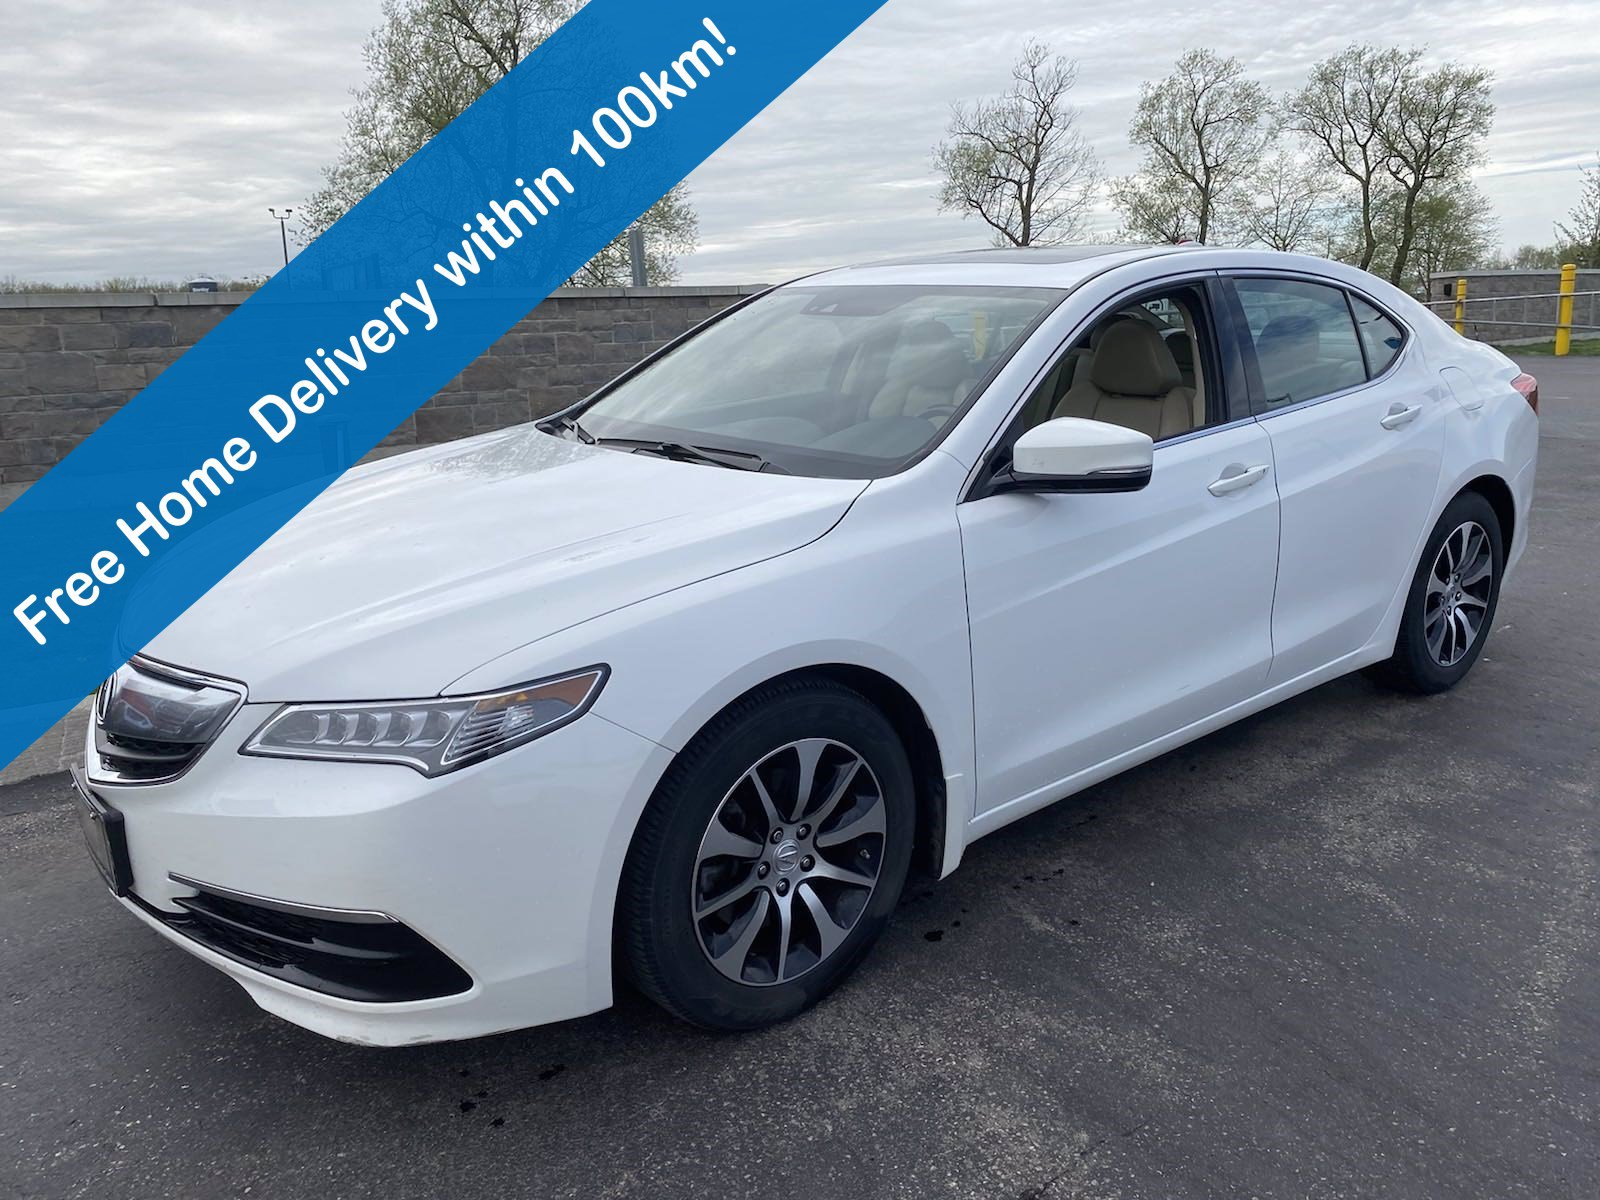 Certified Pre-Owned 2016 Acura TLX Tech Pkg, Navigation, Leather, Sunroof, Heated Seats, Memory Seats & More!